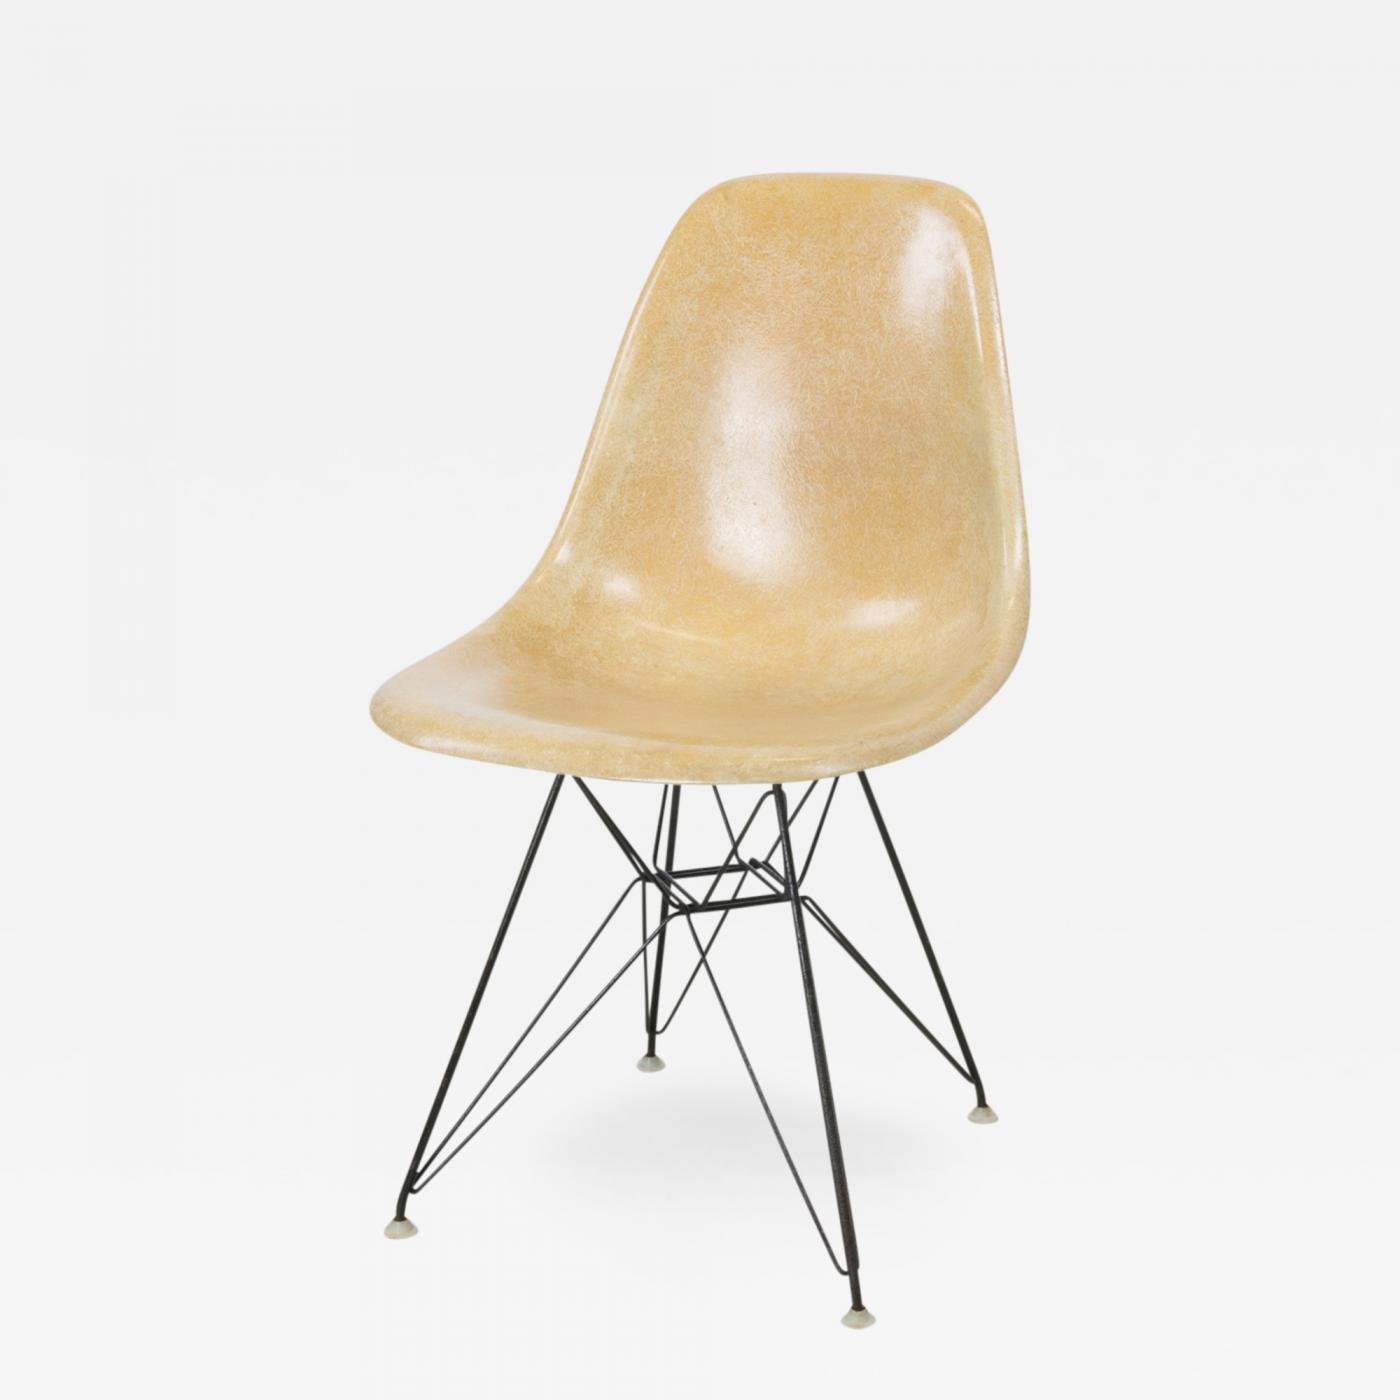 Listings / Furniture / Seating / Side Chairs · Charles Ray Eames DSR Eiffel  Base ...